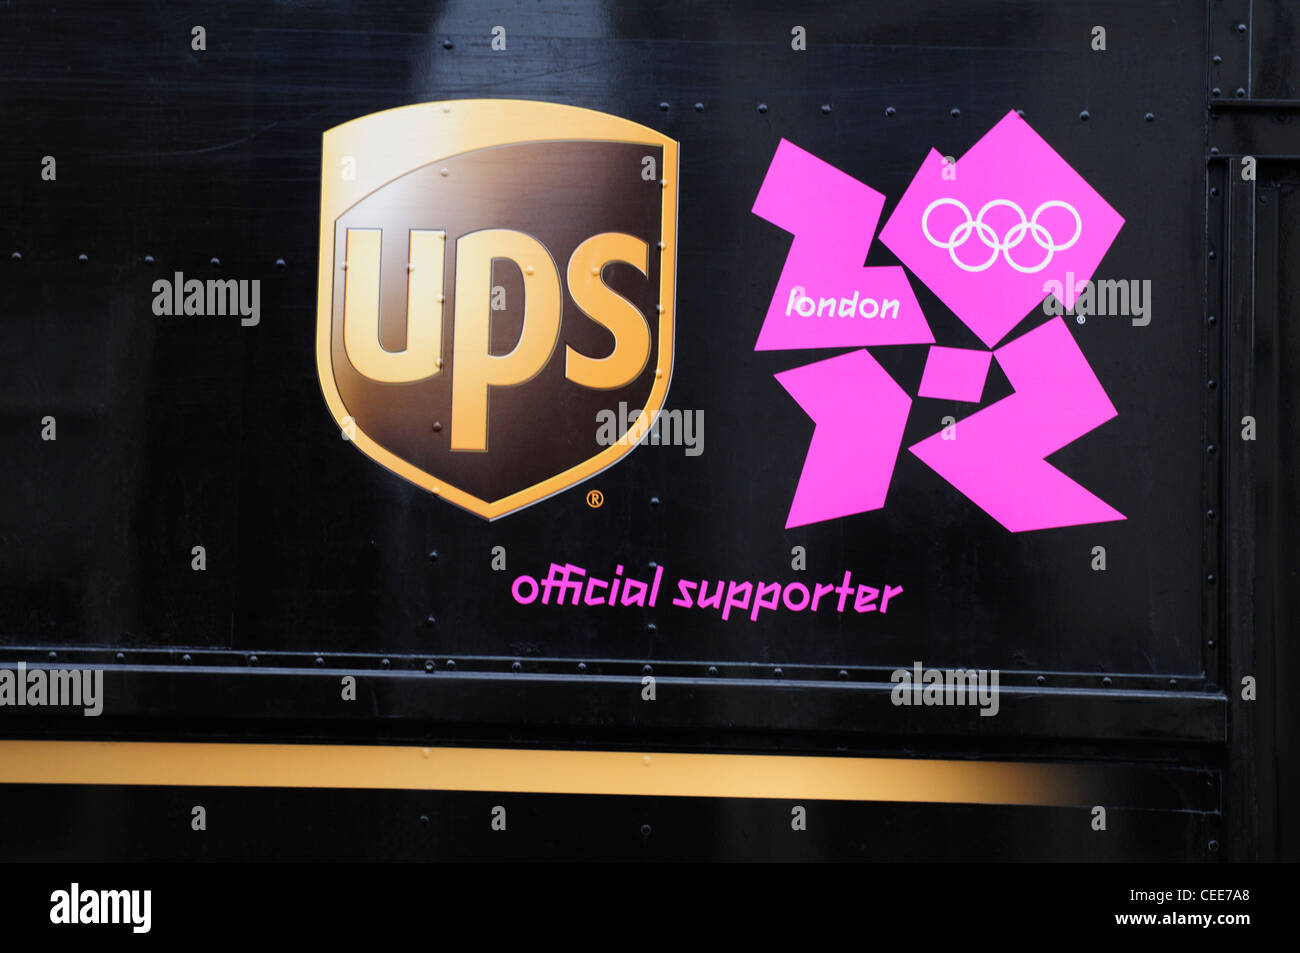 UPS Parcel Courier Delivery Lorry Detail with London 2012 Official Supporter Logo, Cambridge, England, UK - Stock Image